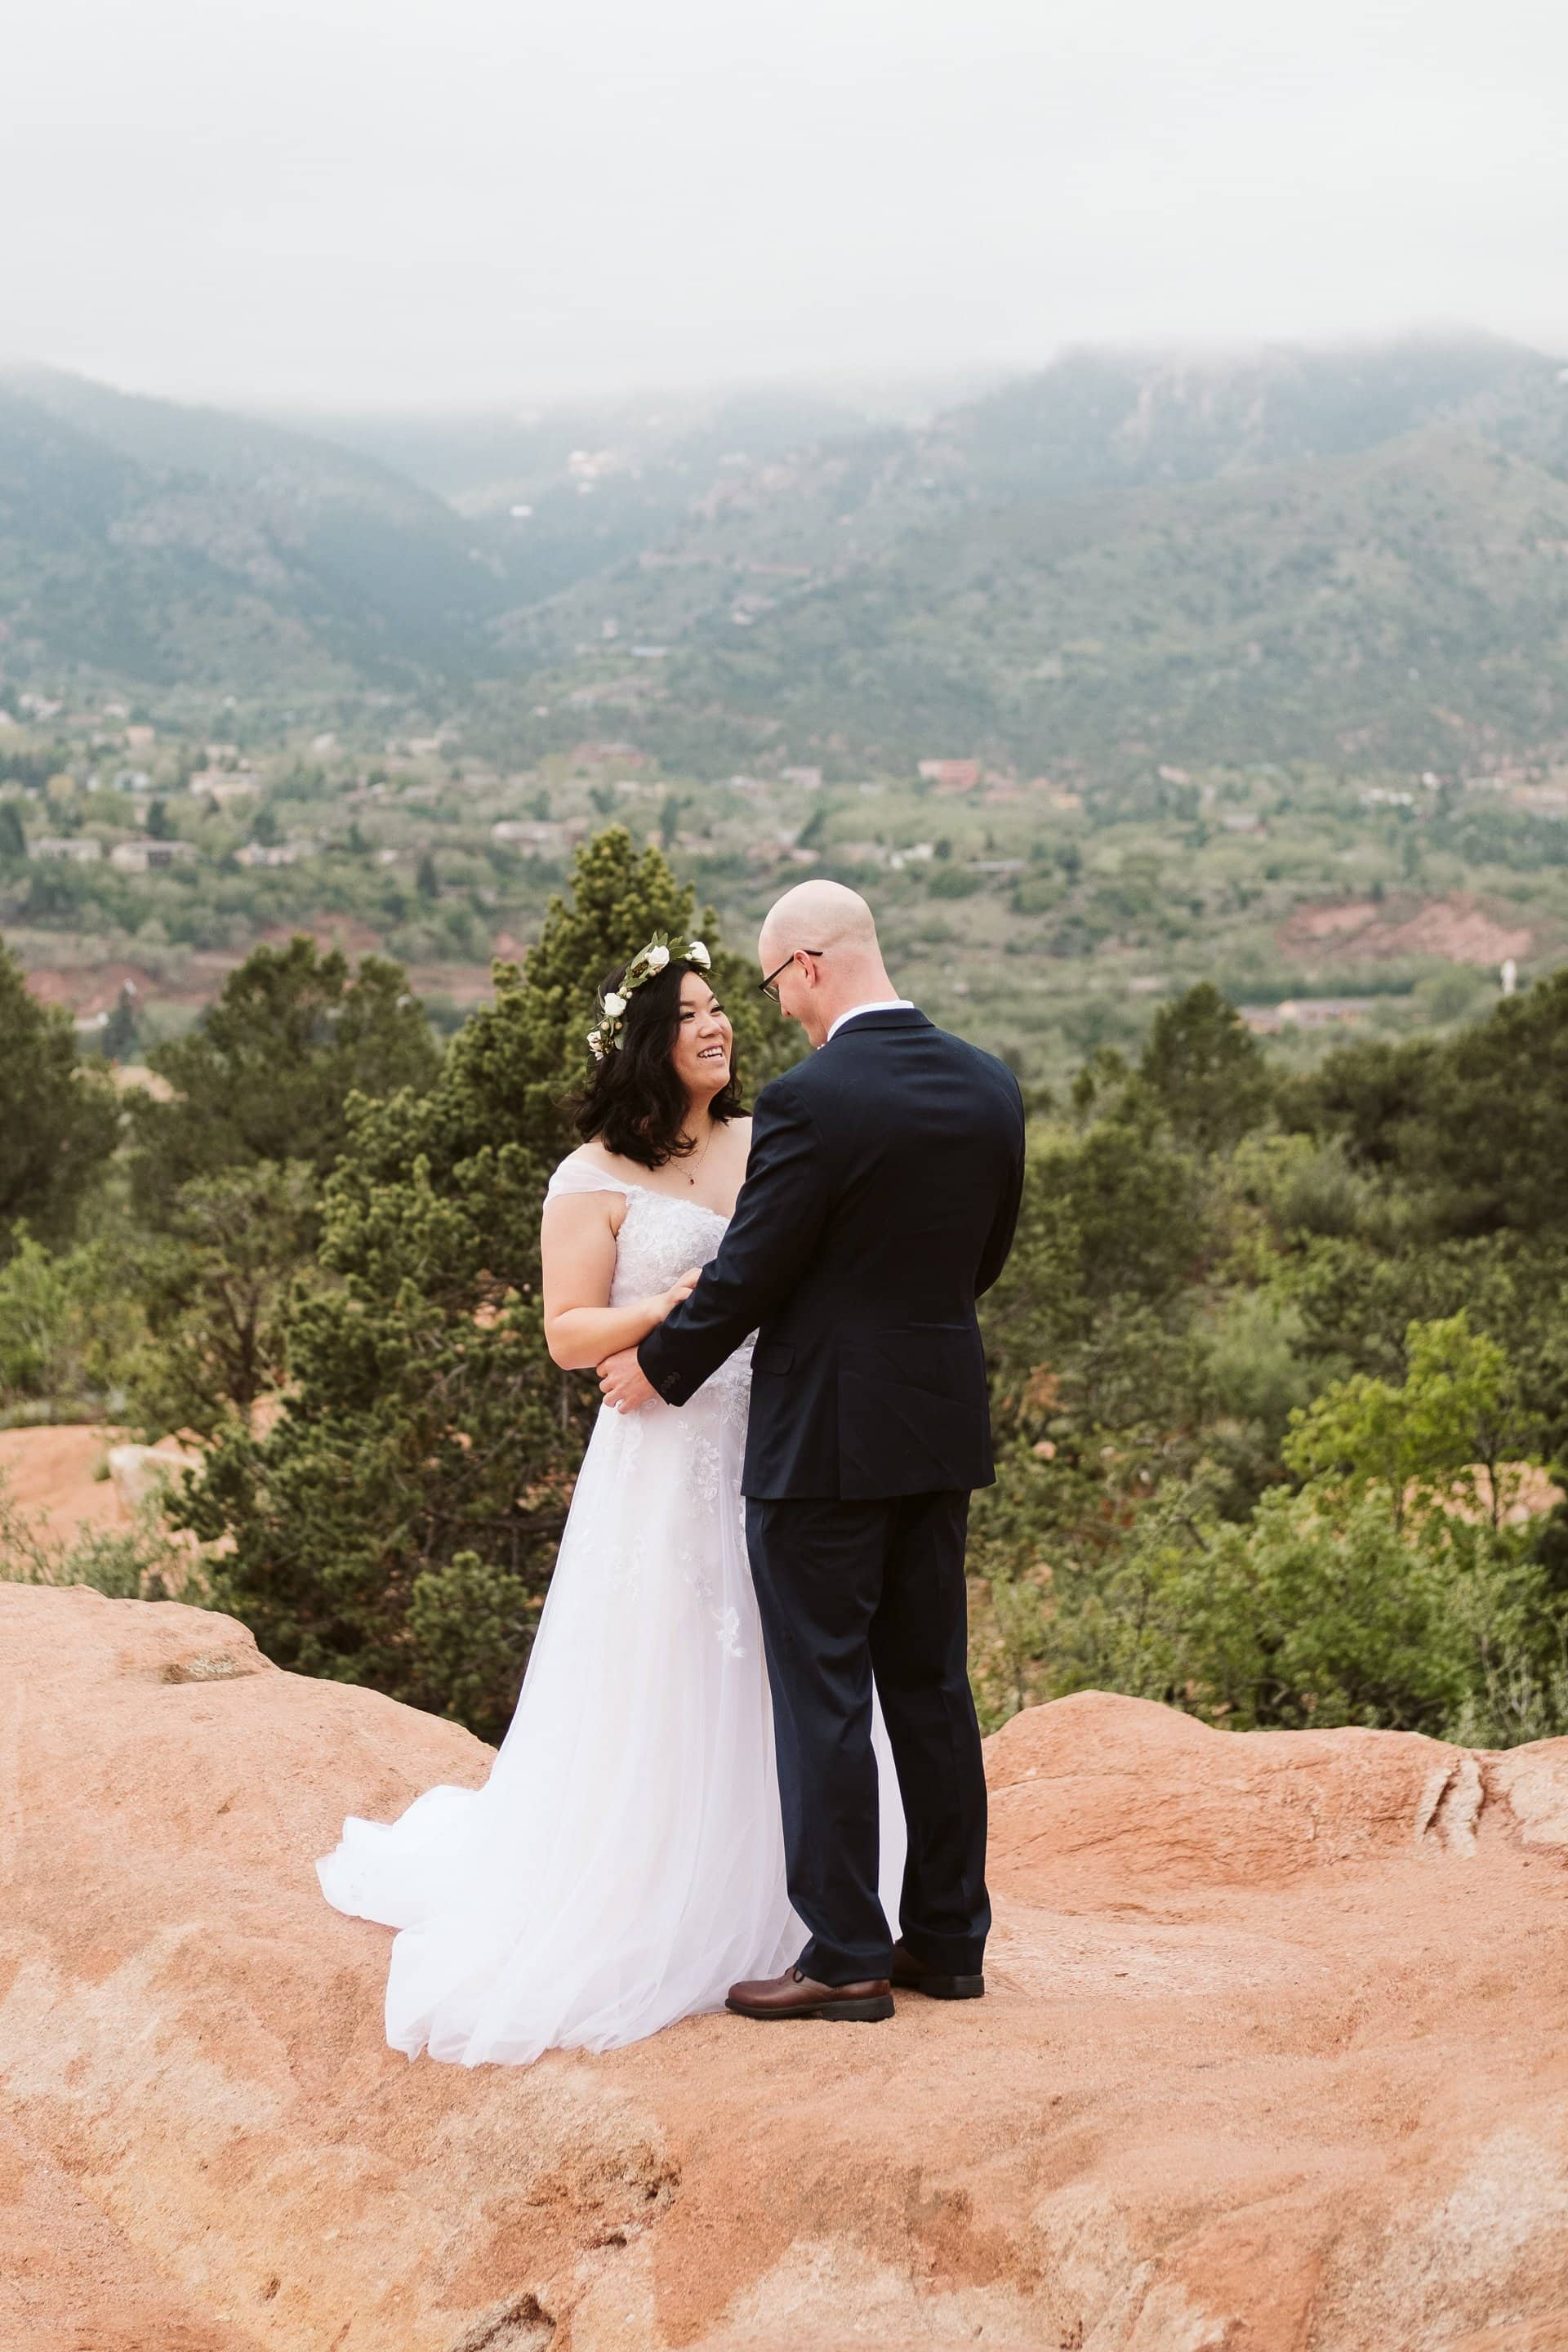 First look before elopement at Garden of the Gods in Colorado Springs